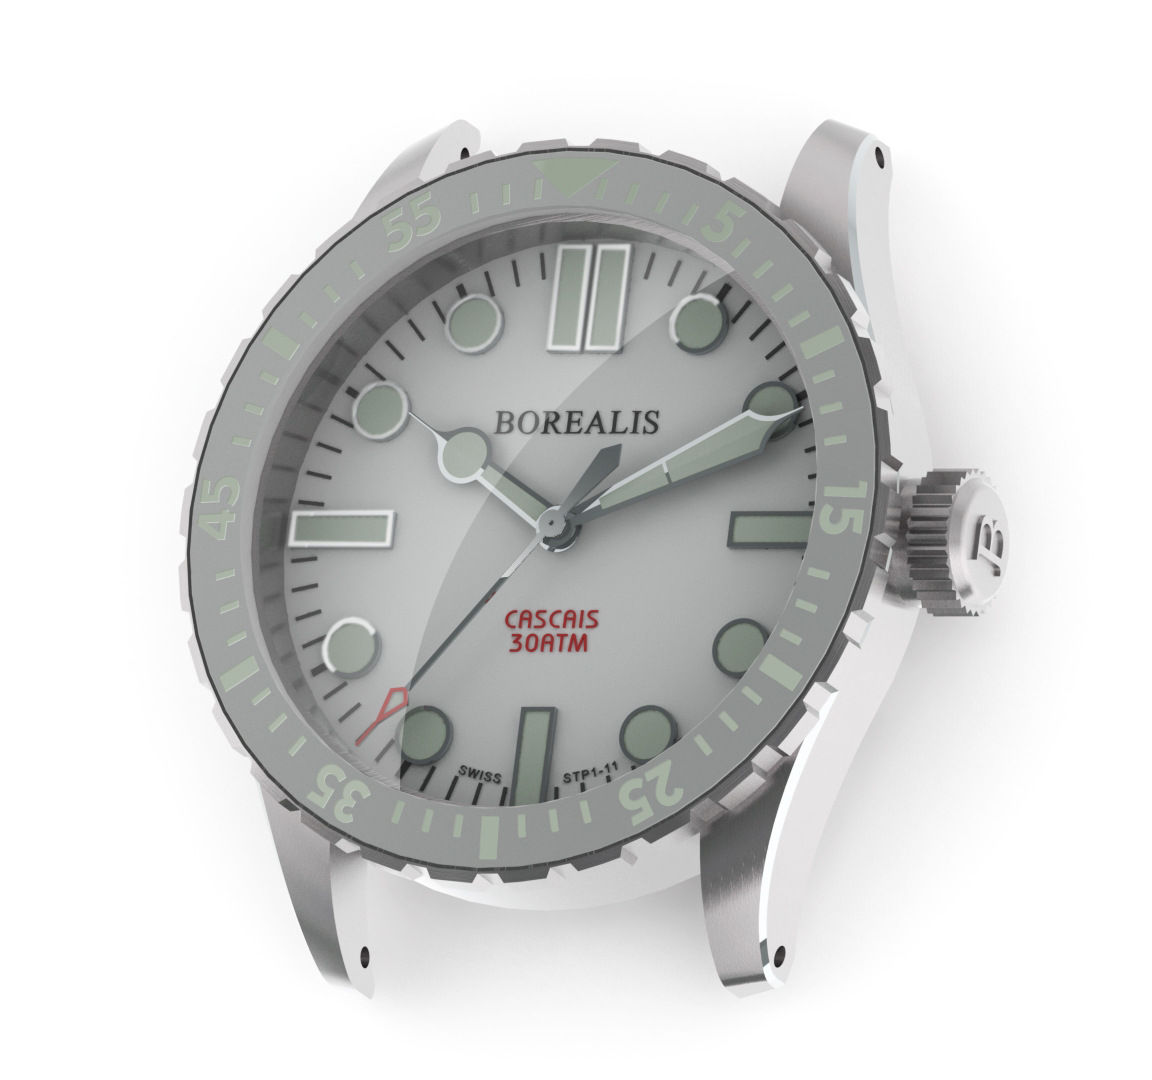 Borealis Cascais White Dial Cathedral Hands No Date BGW9 Lume